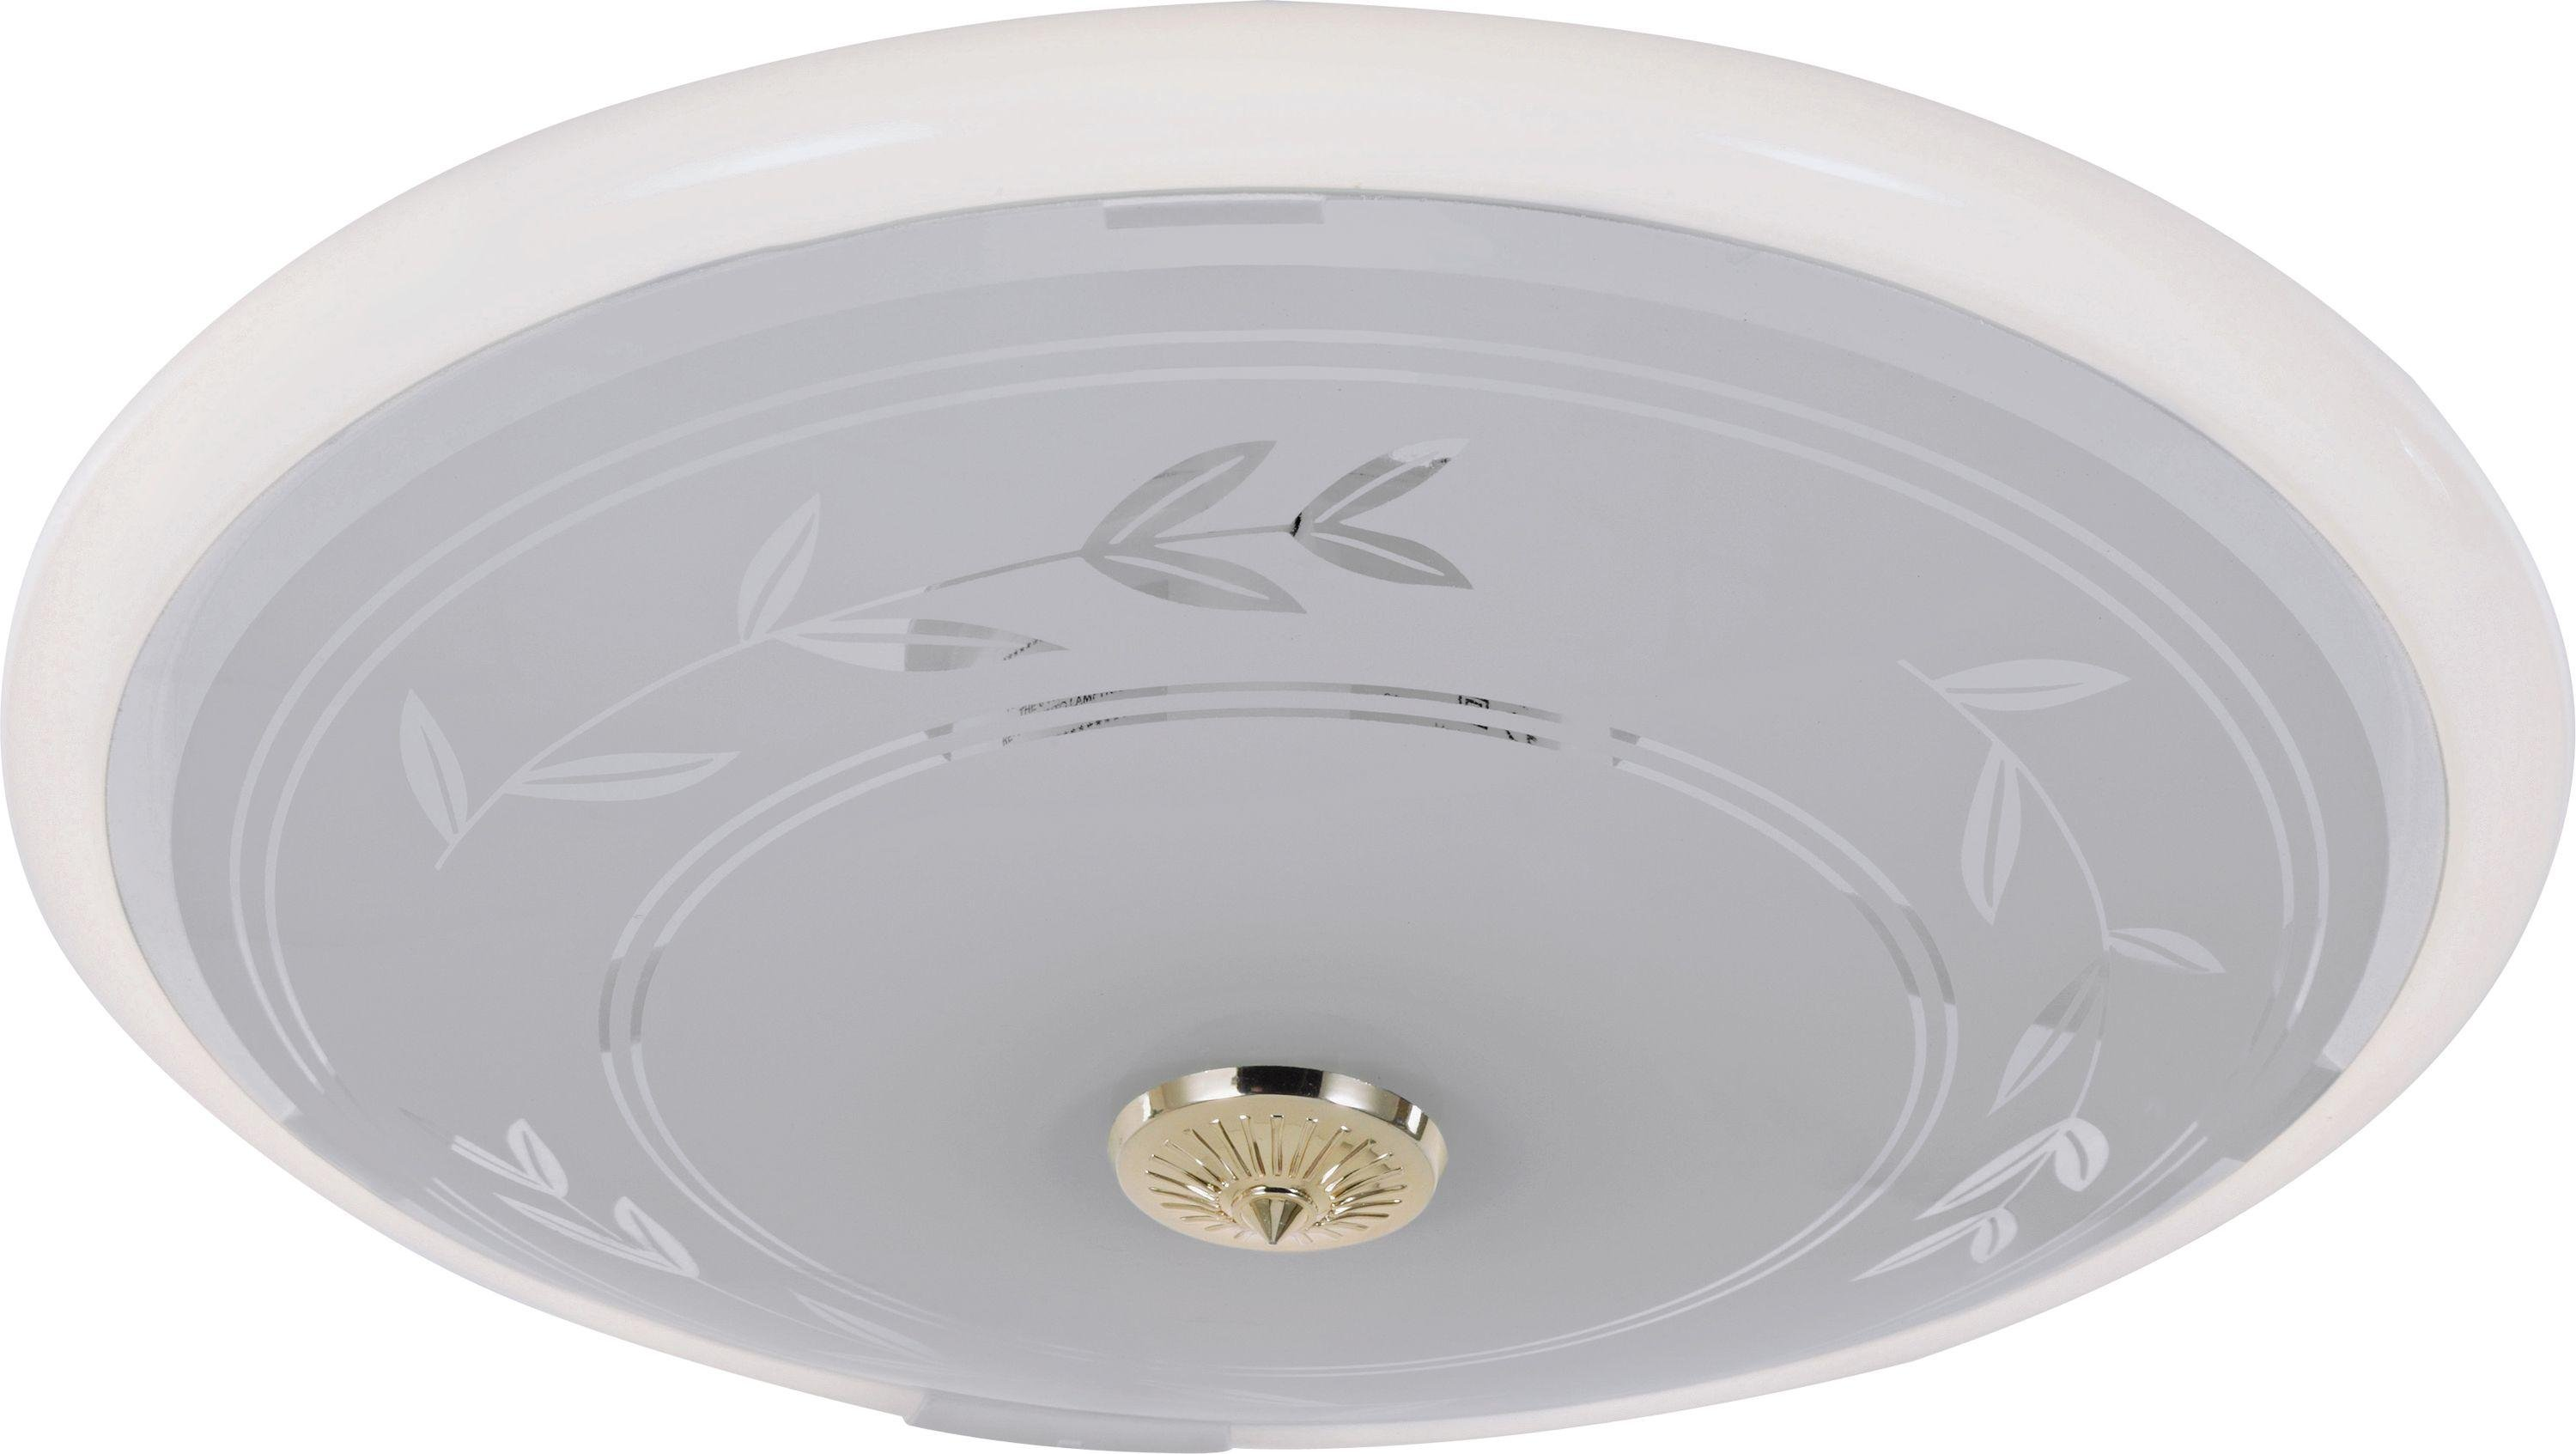 Ceiling Lights Home Bargains : Sale on home circular fluorescent etch flush ceiling